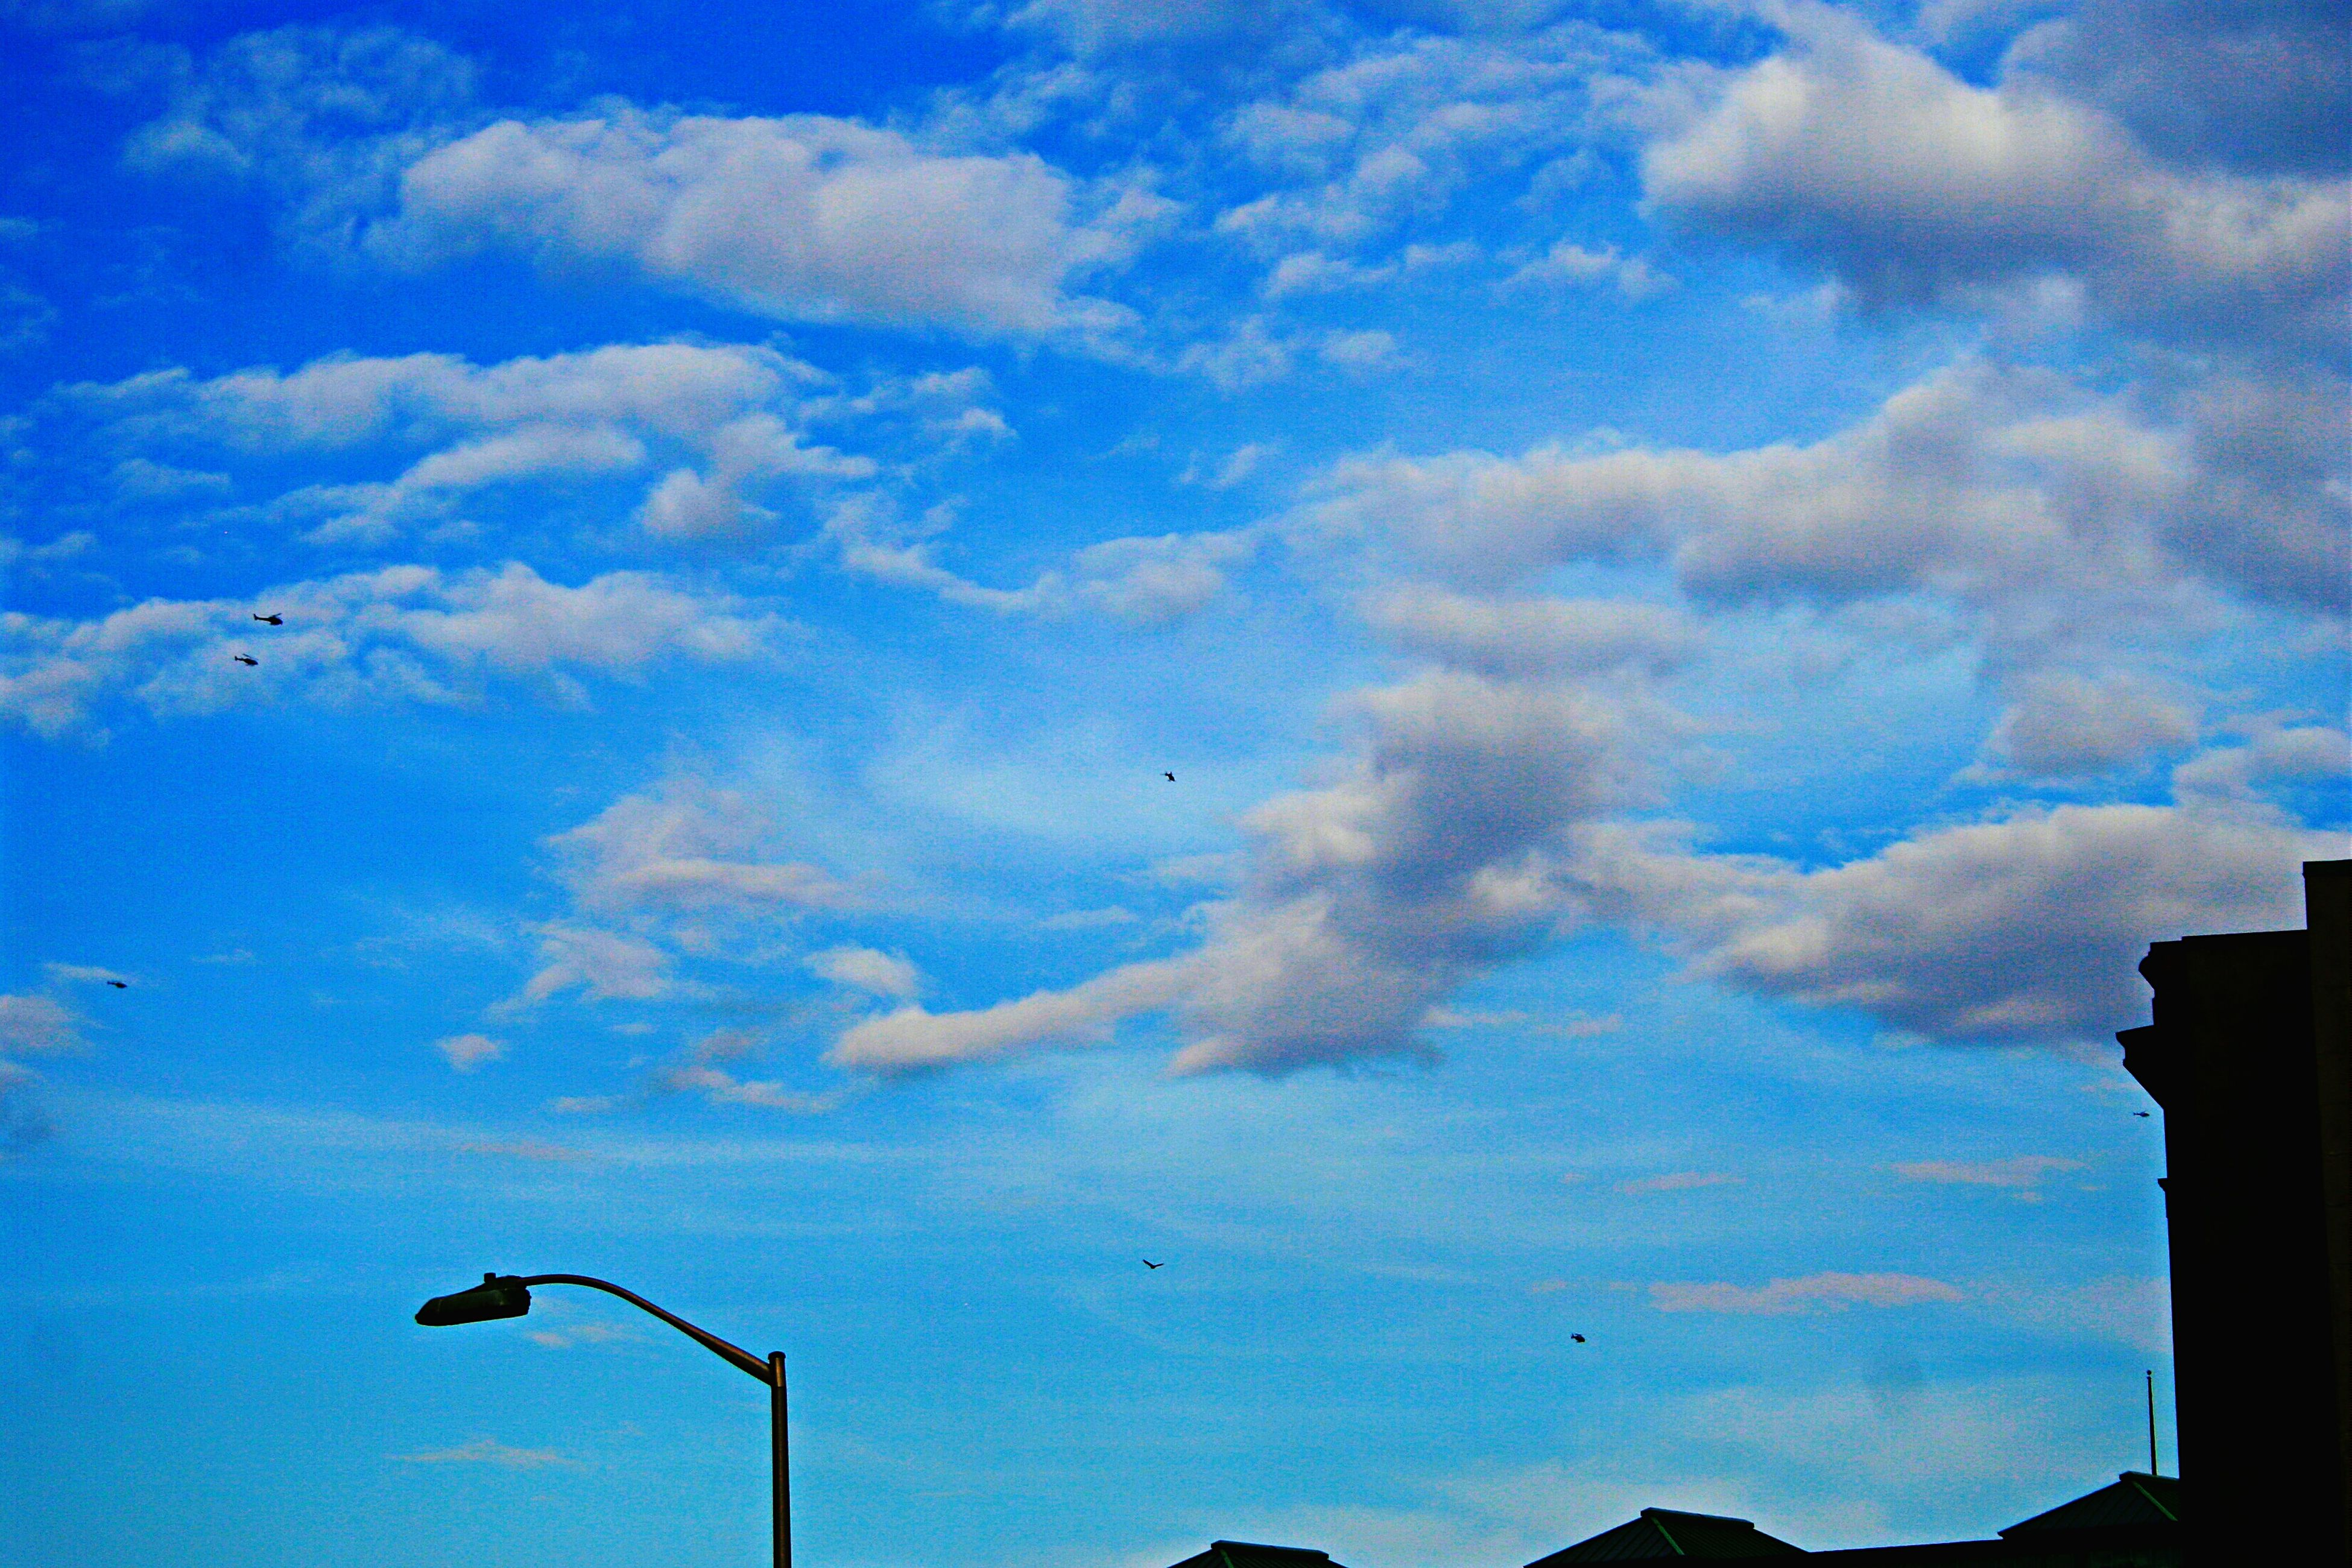 low angle view, sky, blue, silhouette, cloud - sky, bird, cloud, street light, animal themes, flying, nature, beauty in nature, lighting equipment, wildlife, cloudy, outdoors, no people, animals in the wild, dusk, tranquility